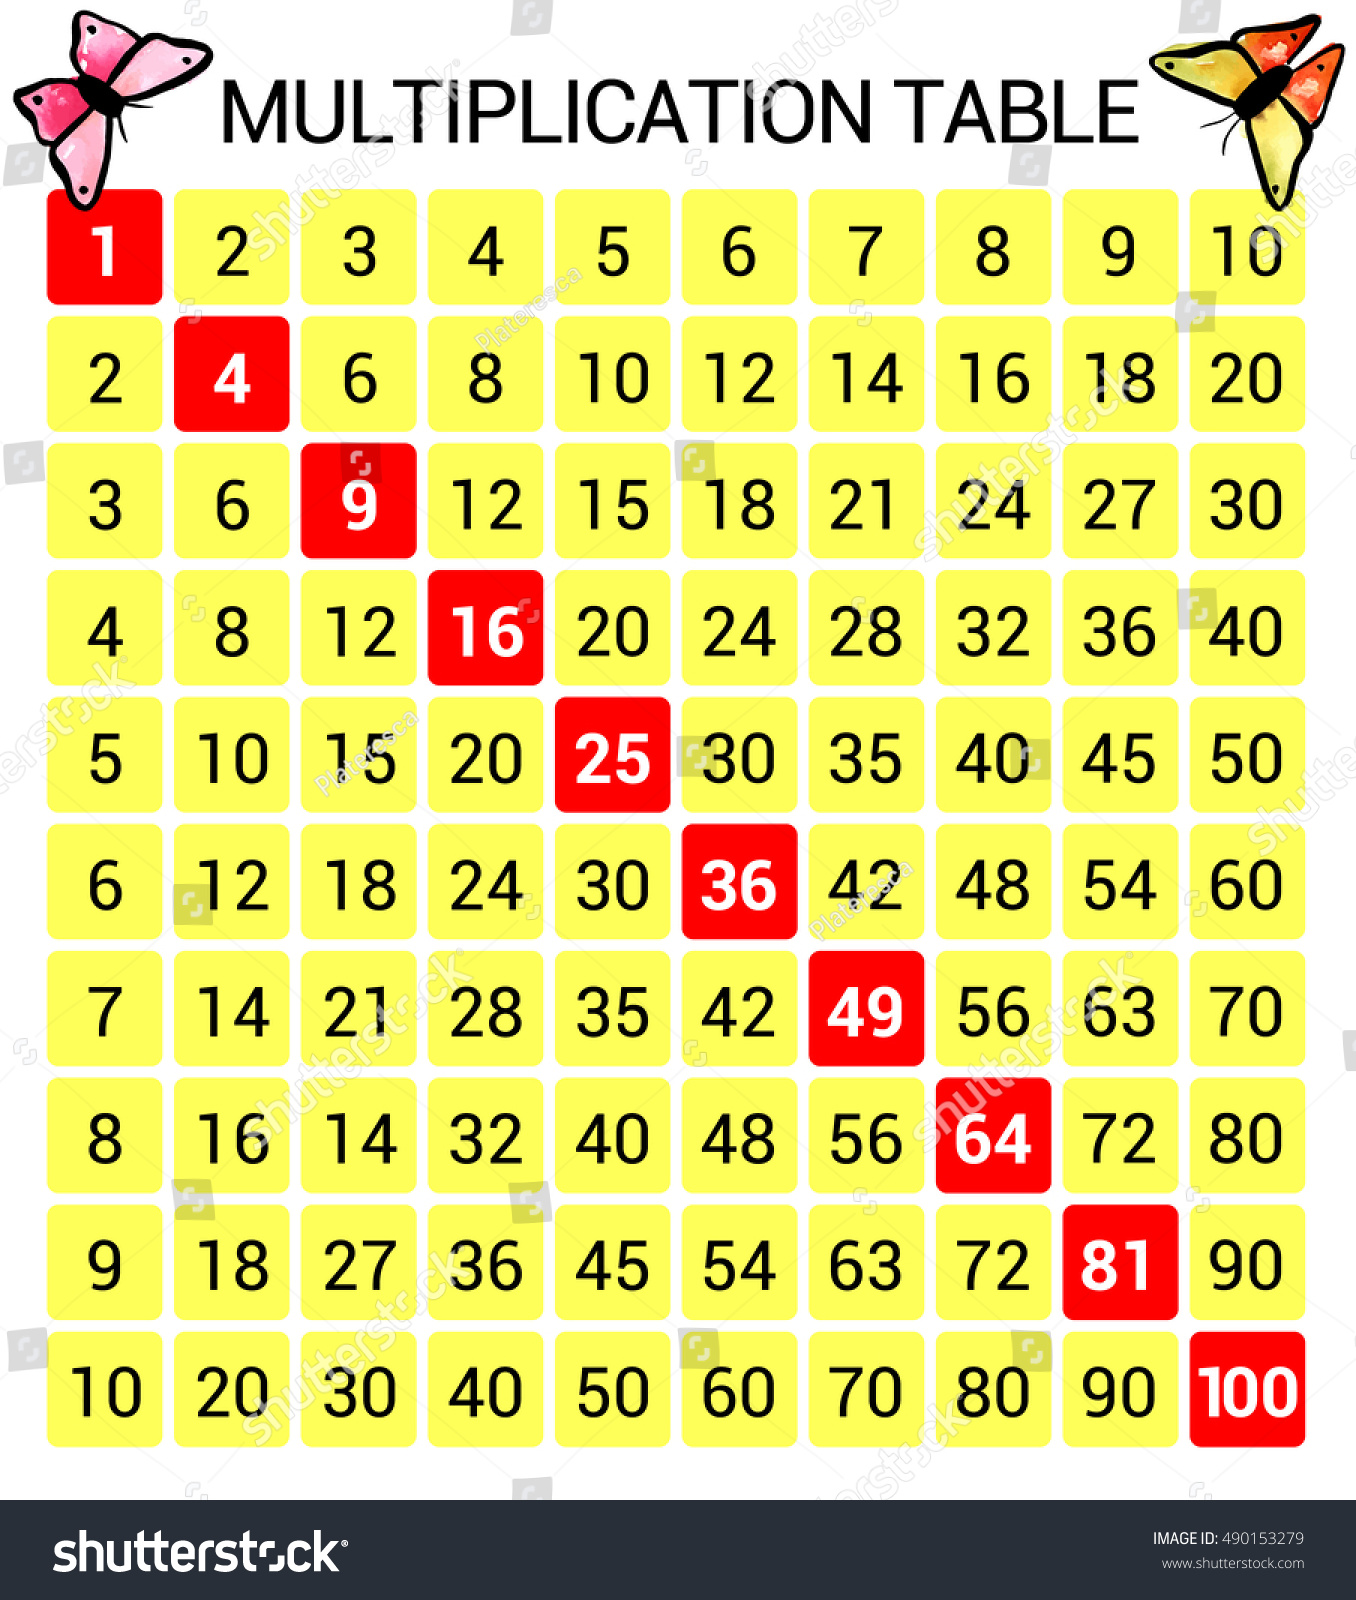 Vector multiplication table educational illustration chart stock vector multiplication table educational illustration chart for school students in yellow and red gamestrikefo Images